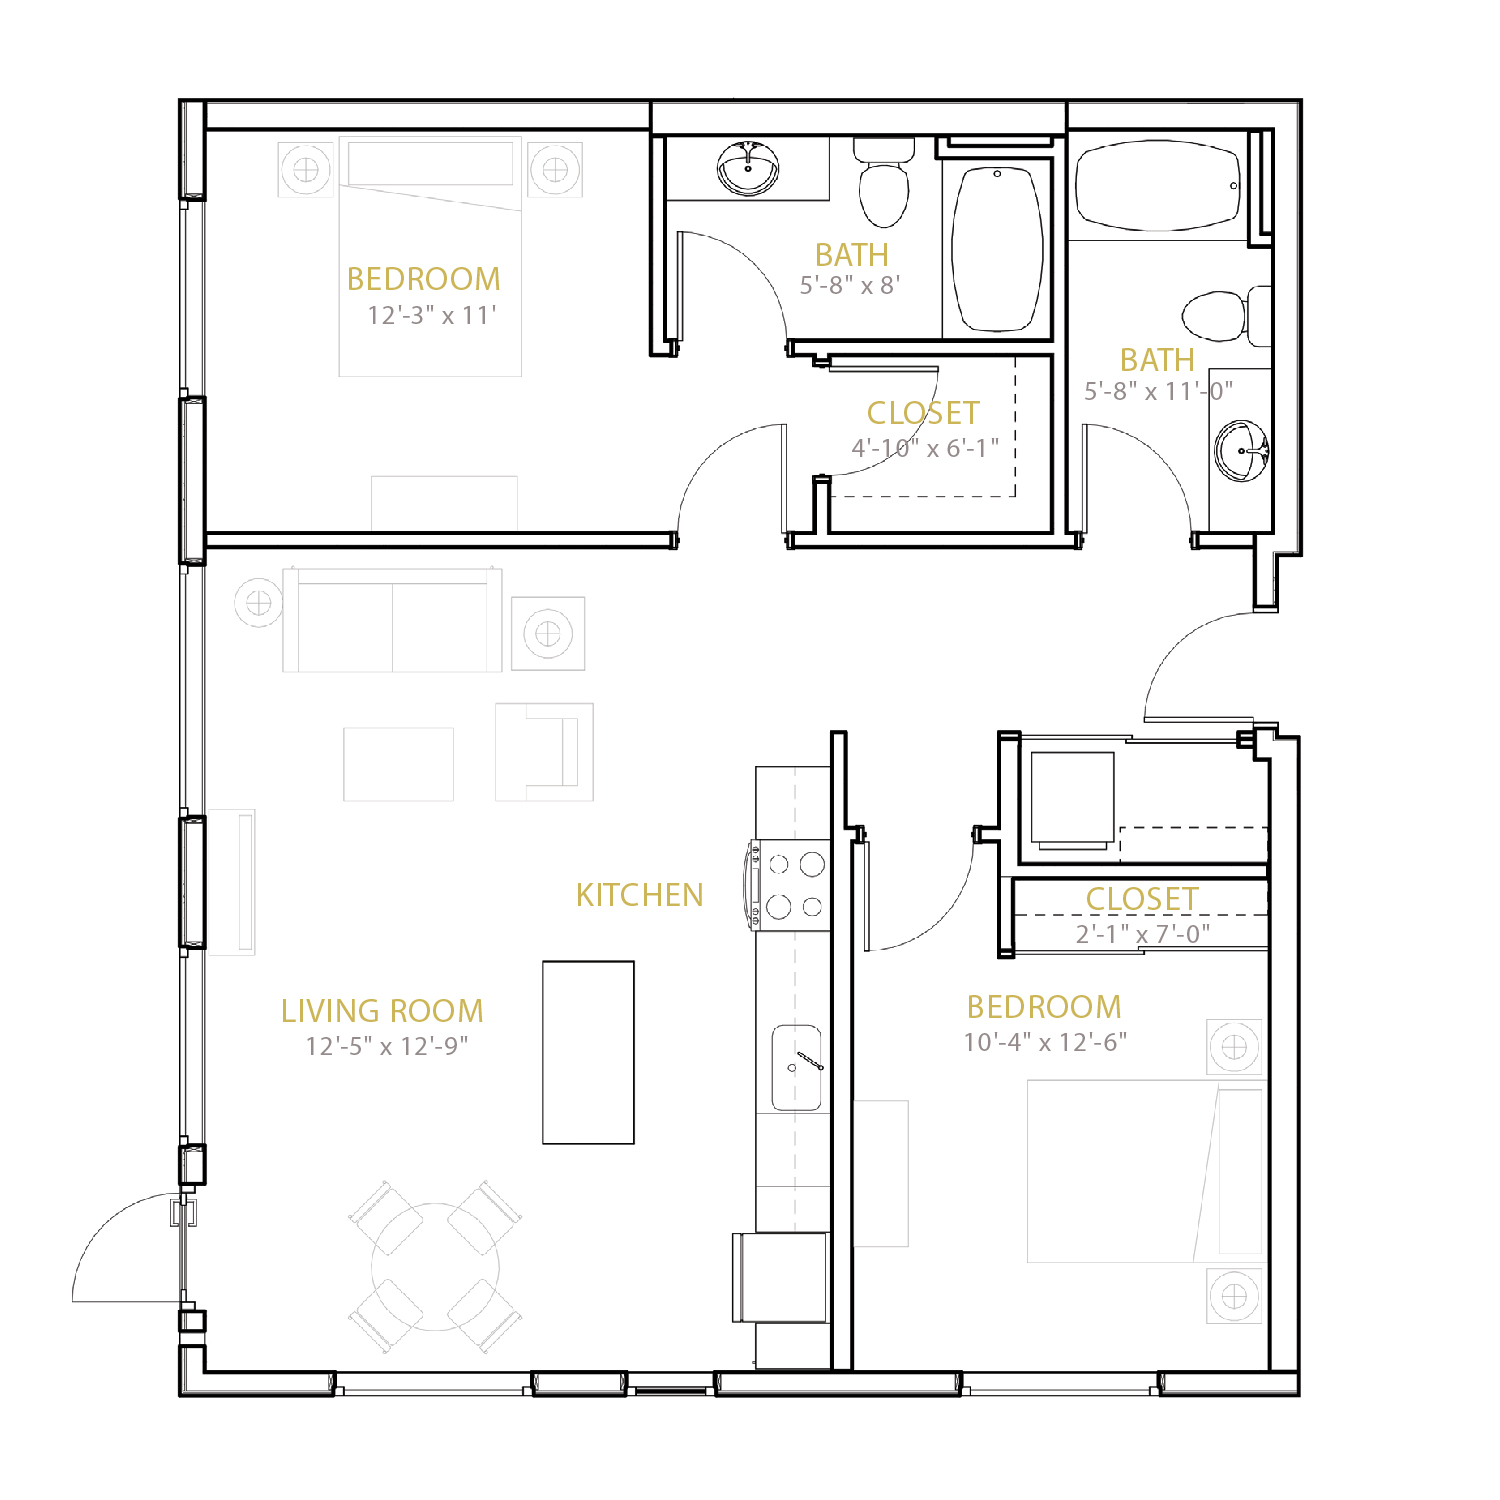 C Two floor plan diagram. Two bedrooms, two bathrooms, and an open kitchen and living area.